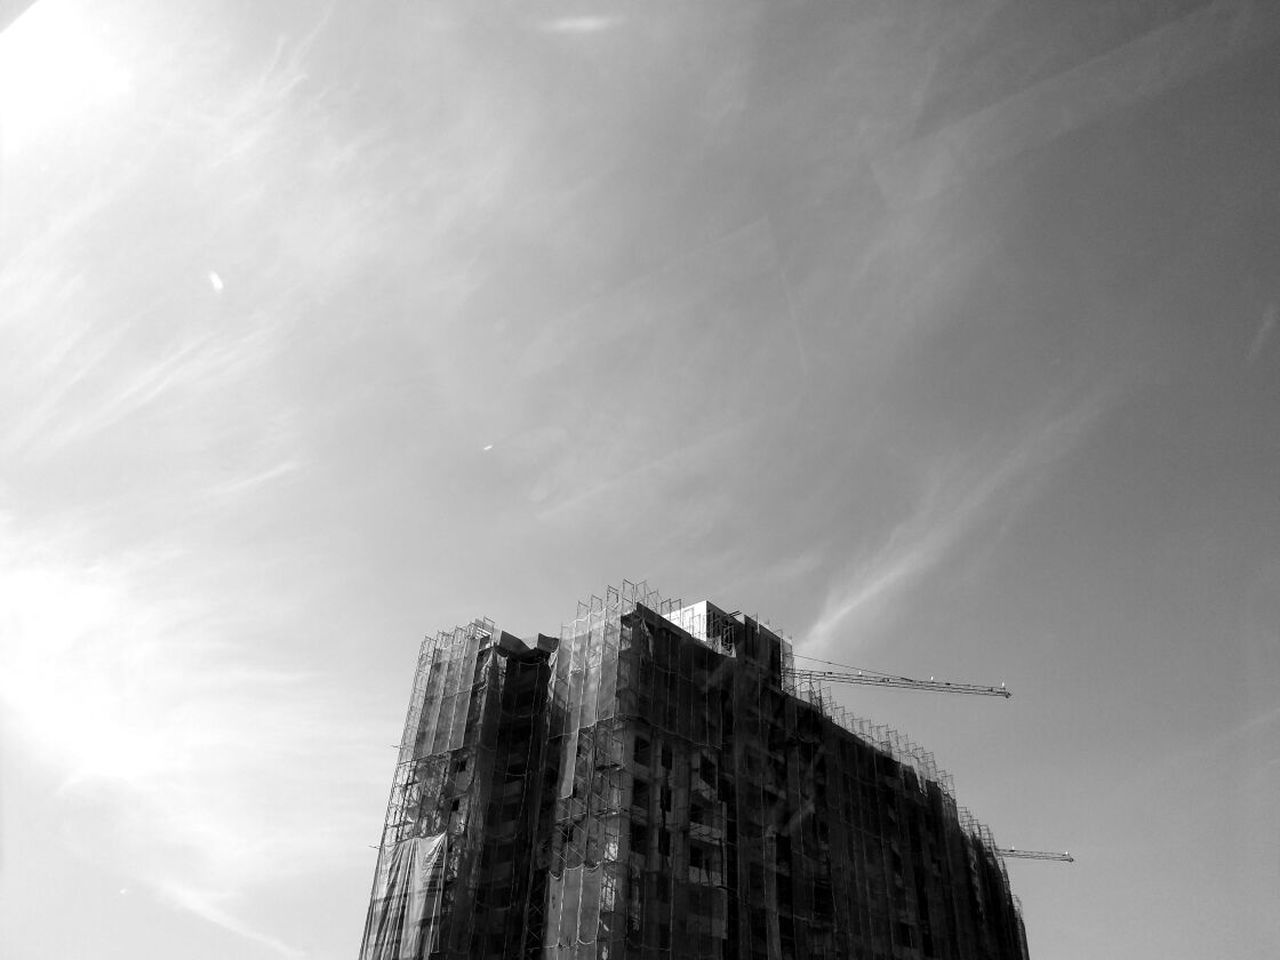 low angle view, sky, day, building exterior, outdoors, architecture, no people, nature